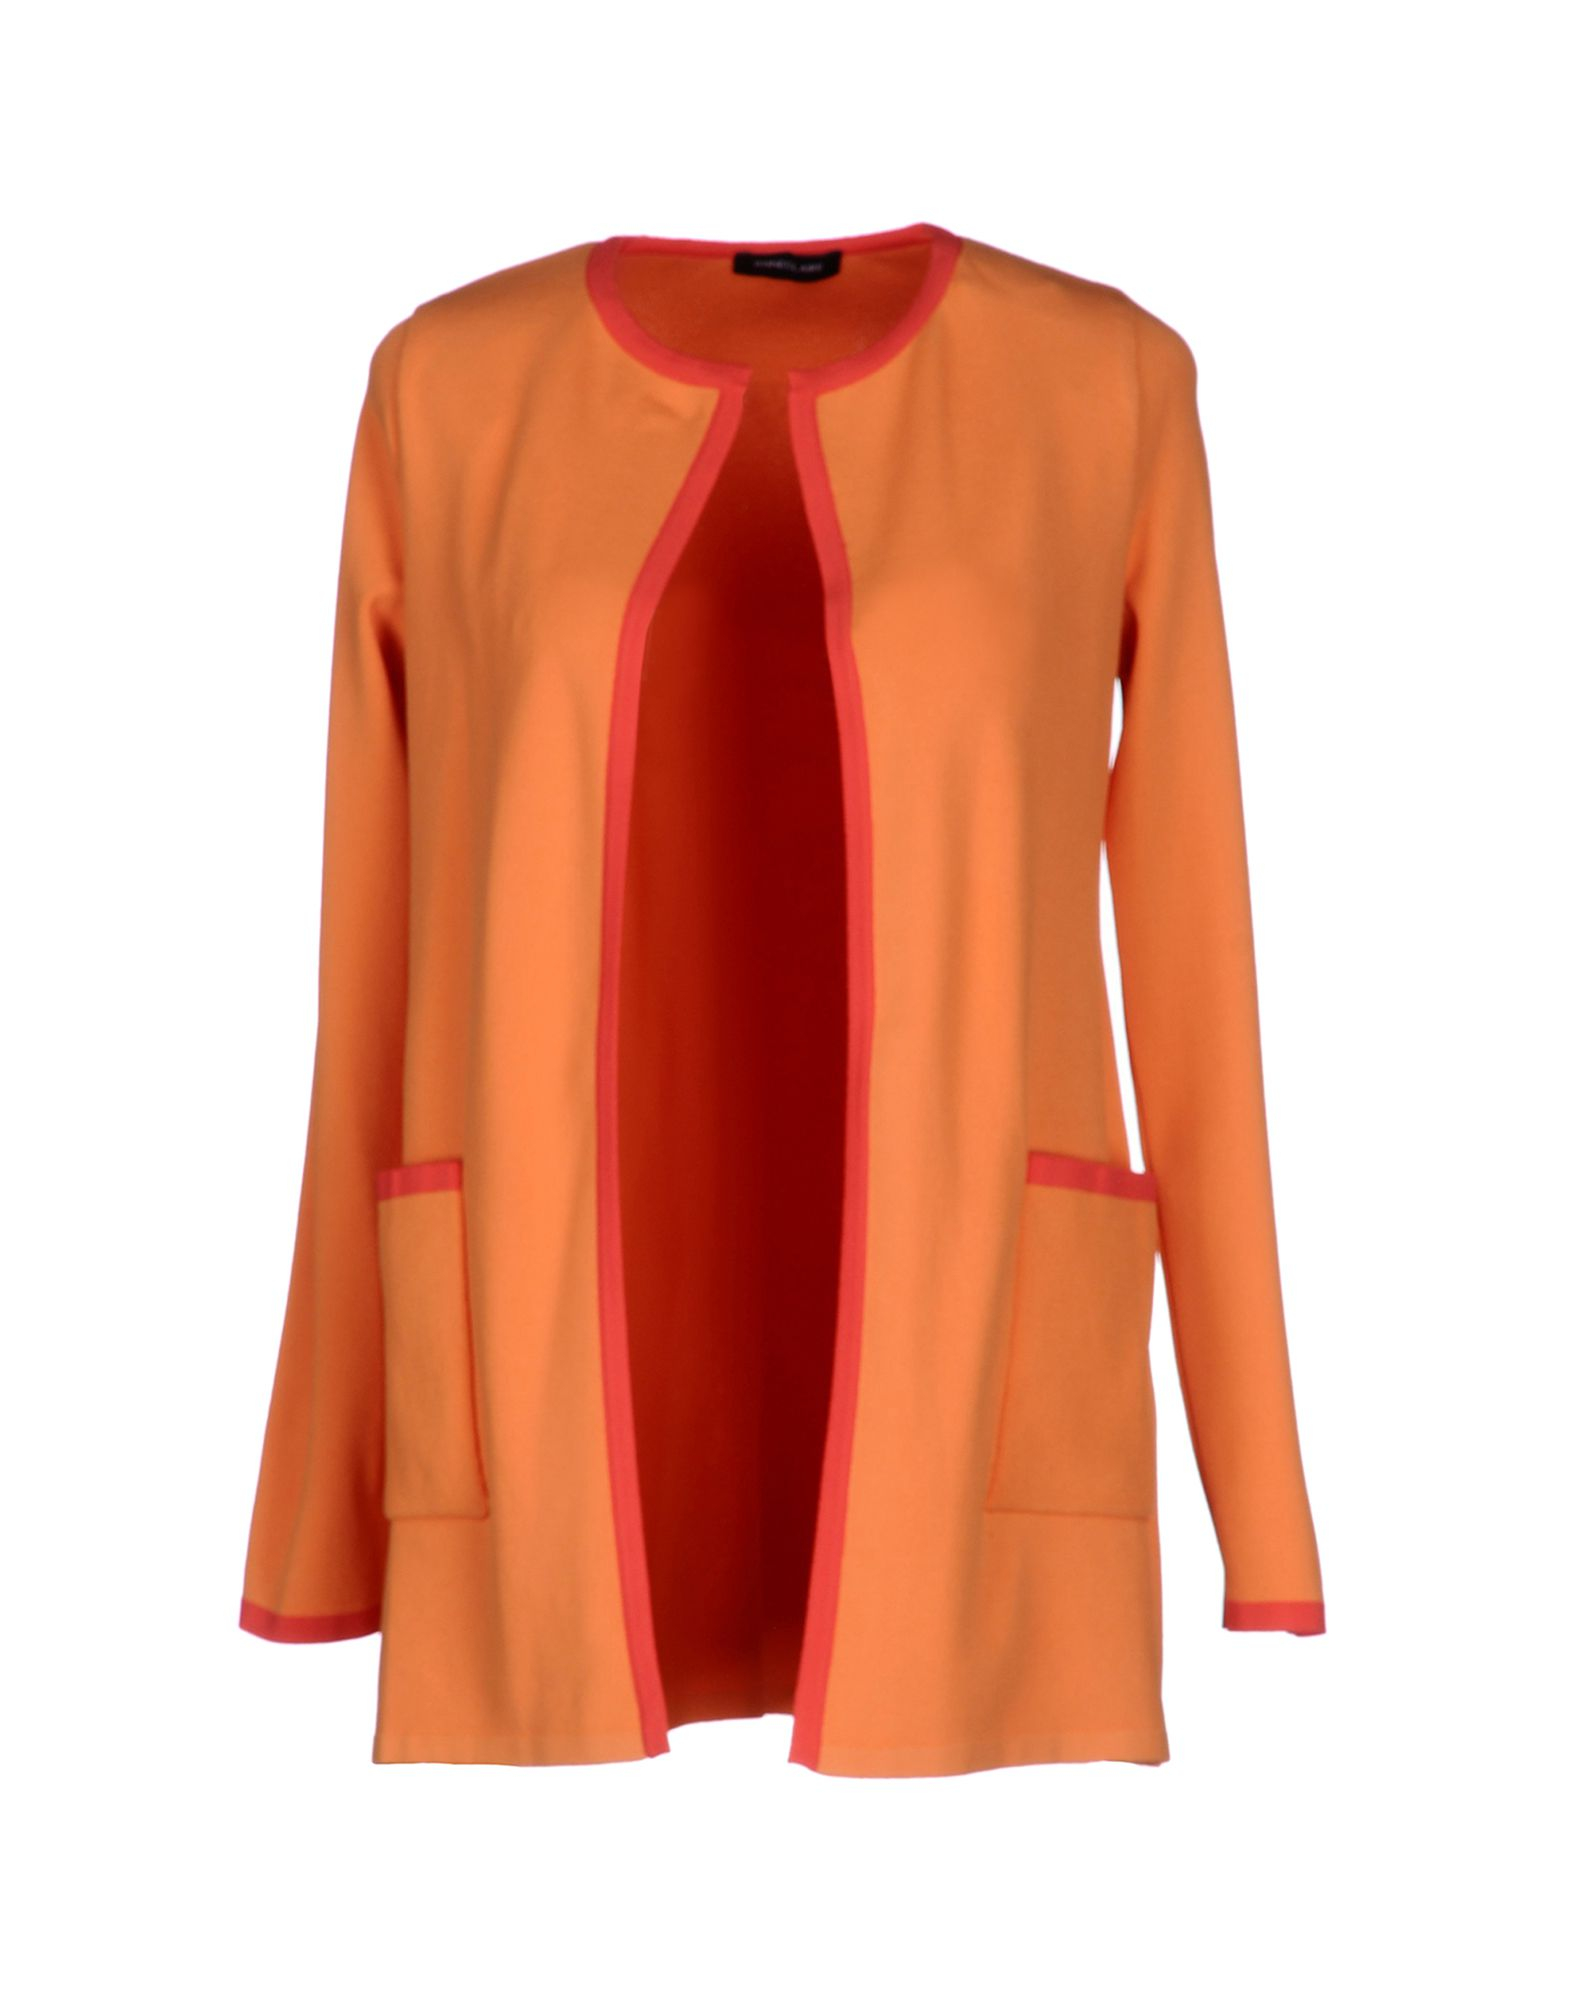 Cute fall outfit in Orange, navy and white Find this Pin and more on Dressing for fall/winter by Evelyn Vergos. Love the color combo jeans, white tee, long orange cardigan, black and white scarf.